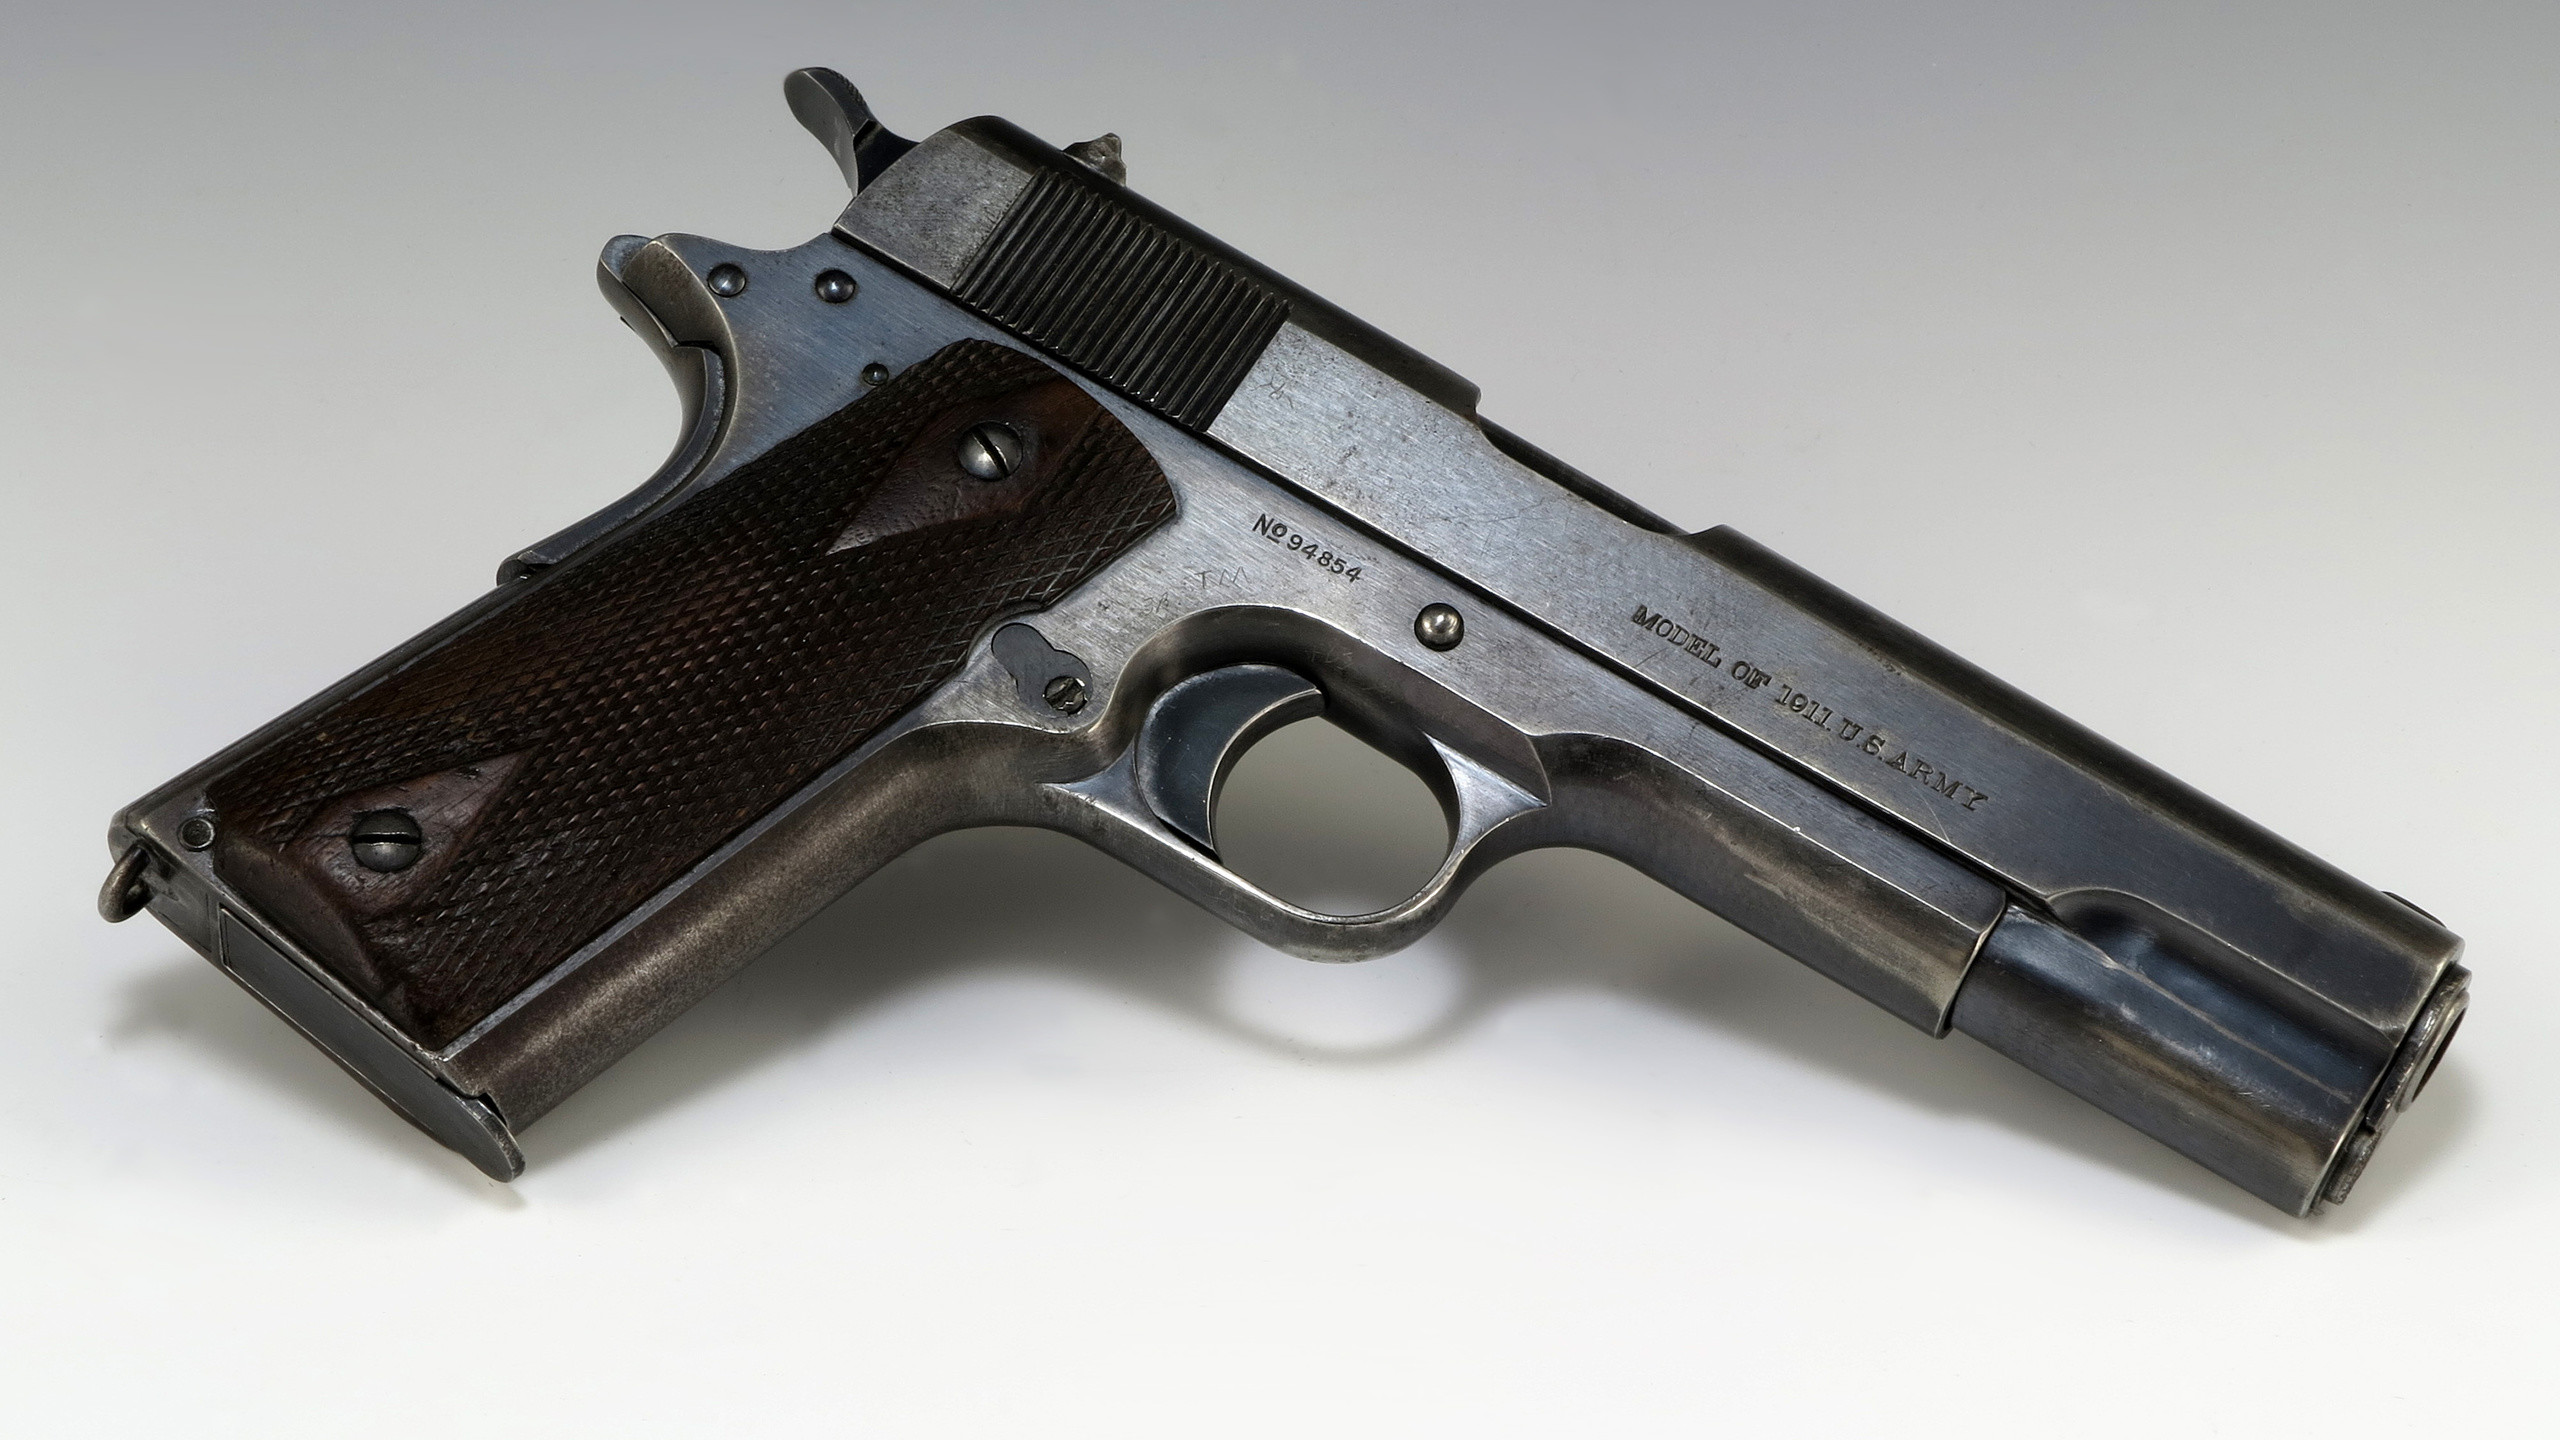 2560x1440 Weapons - Colt 1911 Wallpaper